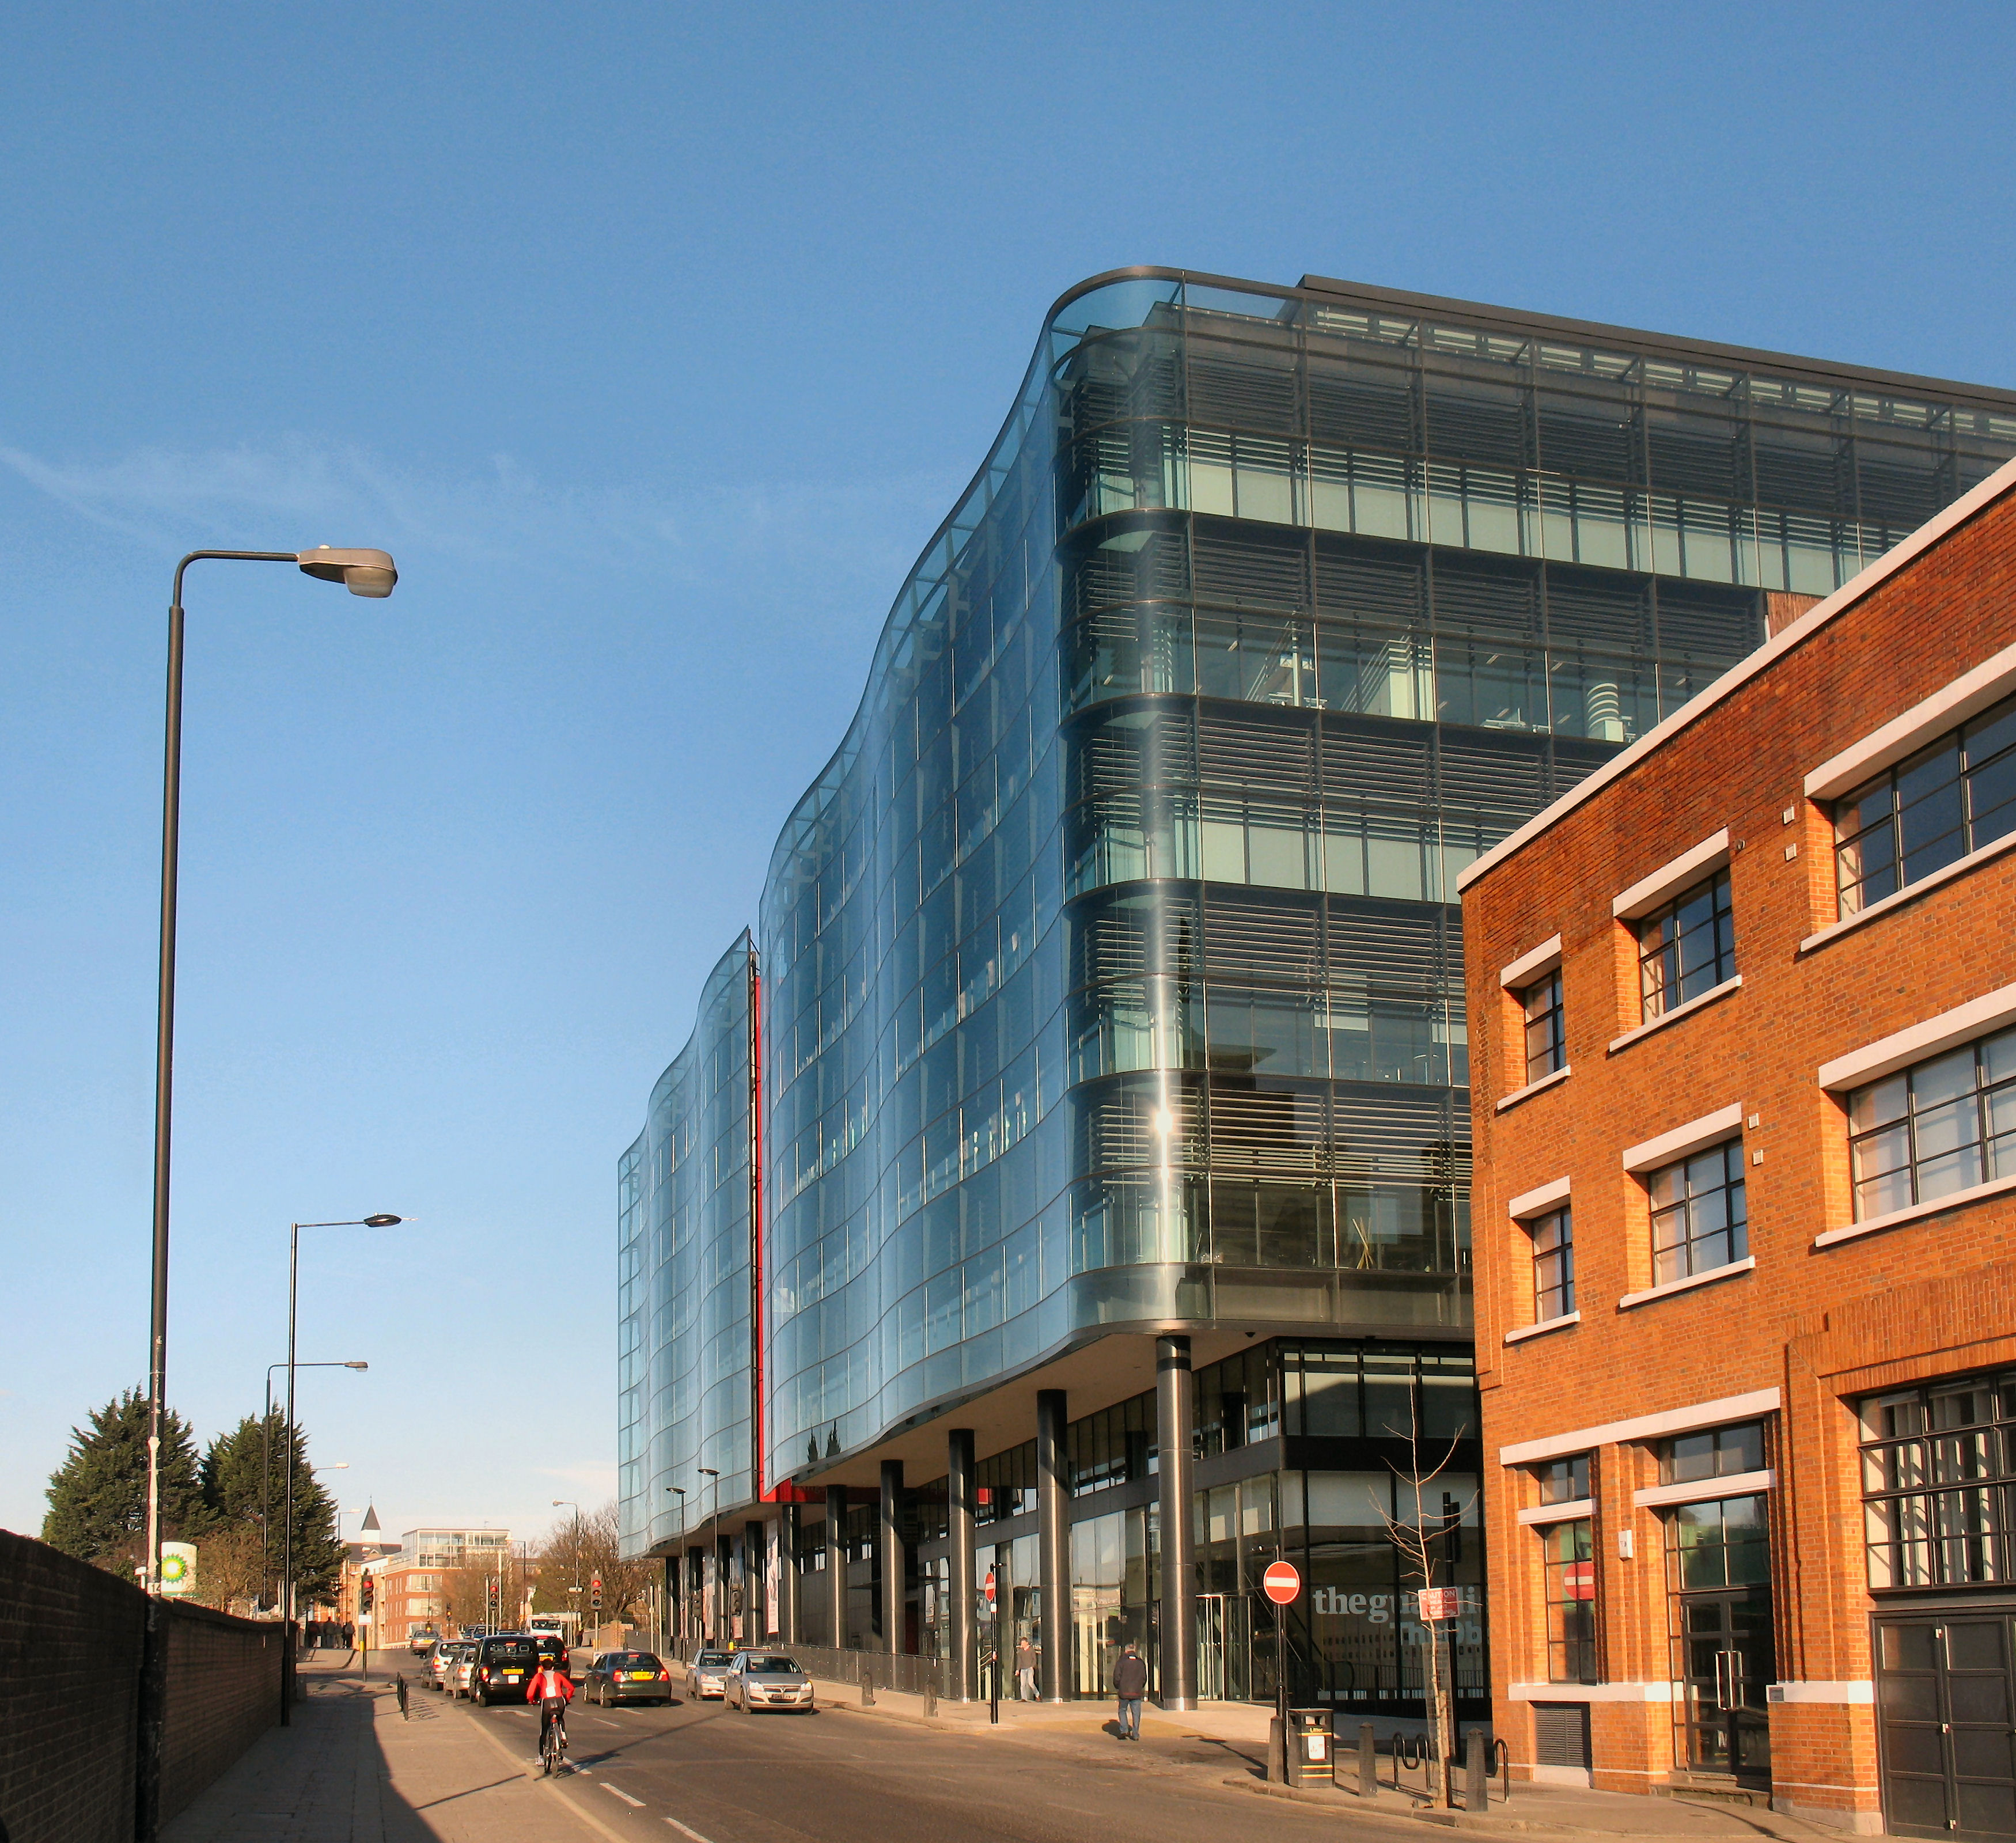 http://upload.wikimedia.org/wikipedia/commons/a/a6/Kings_Place_from_York_Way_in_2009.jpg